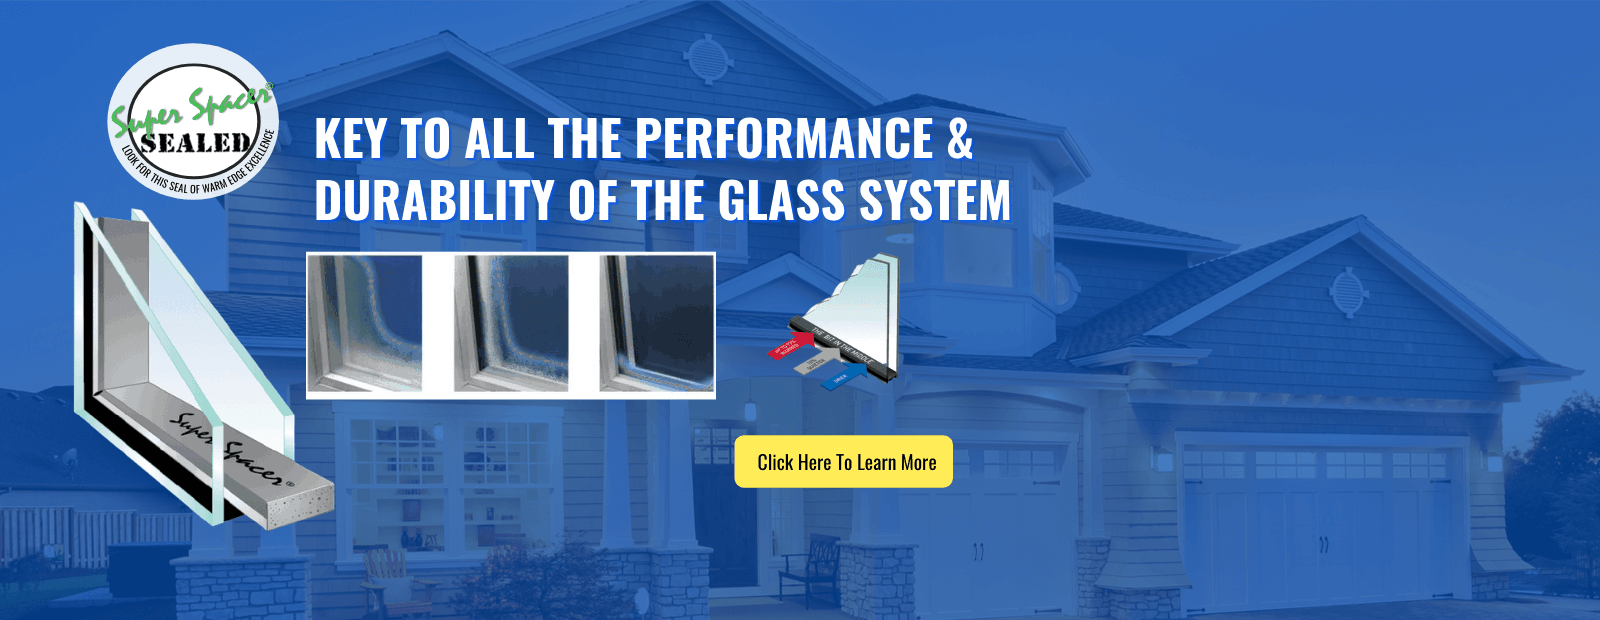 Super Spacer Glass Options Is the Key to All The Performance and Durability of our Products